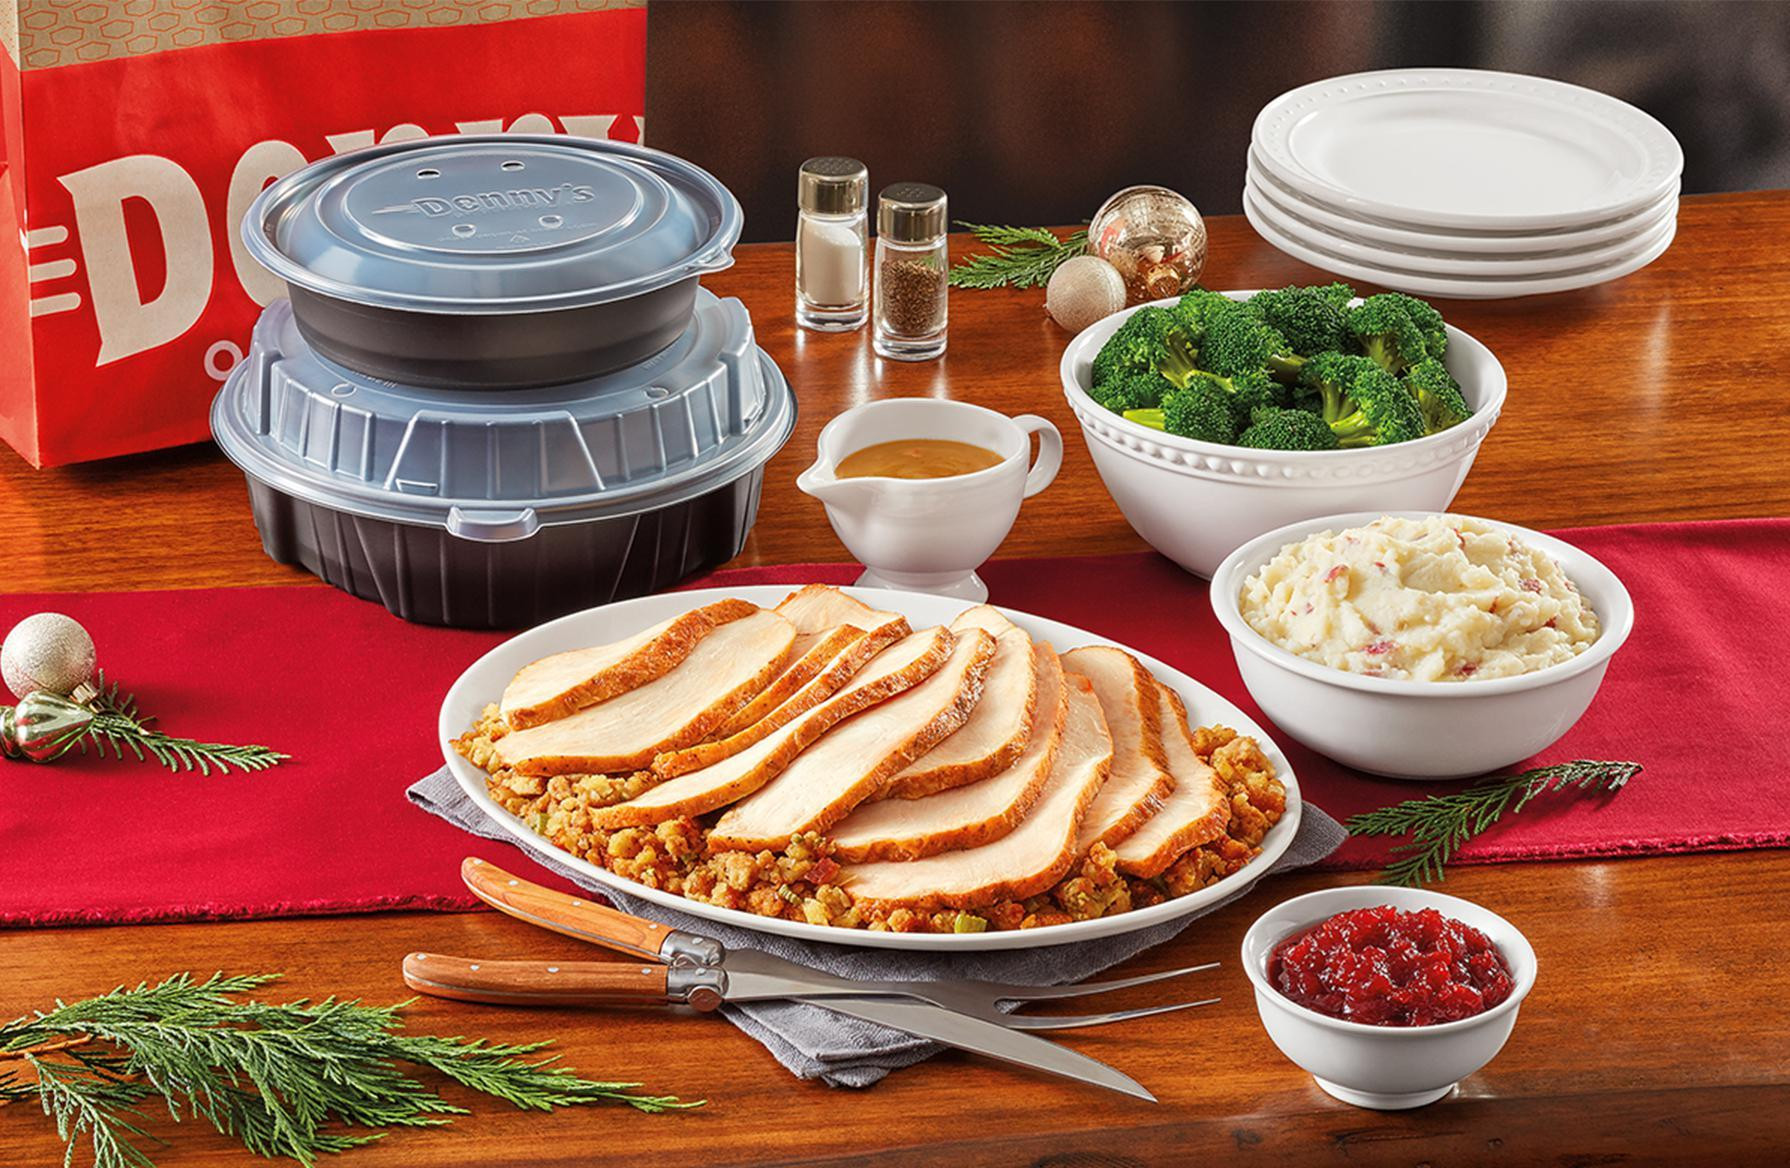 Restaurant Thanksgiving Dinner  19 Chain Restaurants Serving Thanksgiving Dinner Gallery